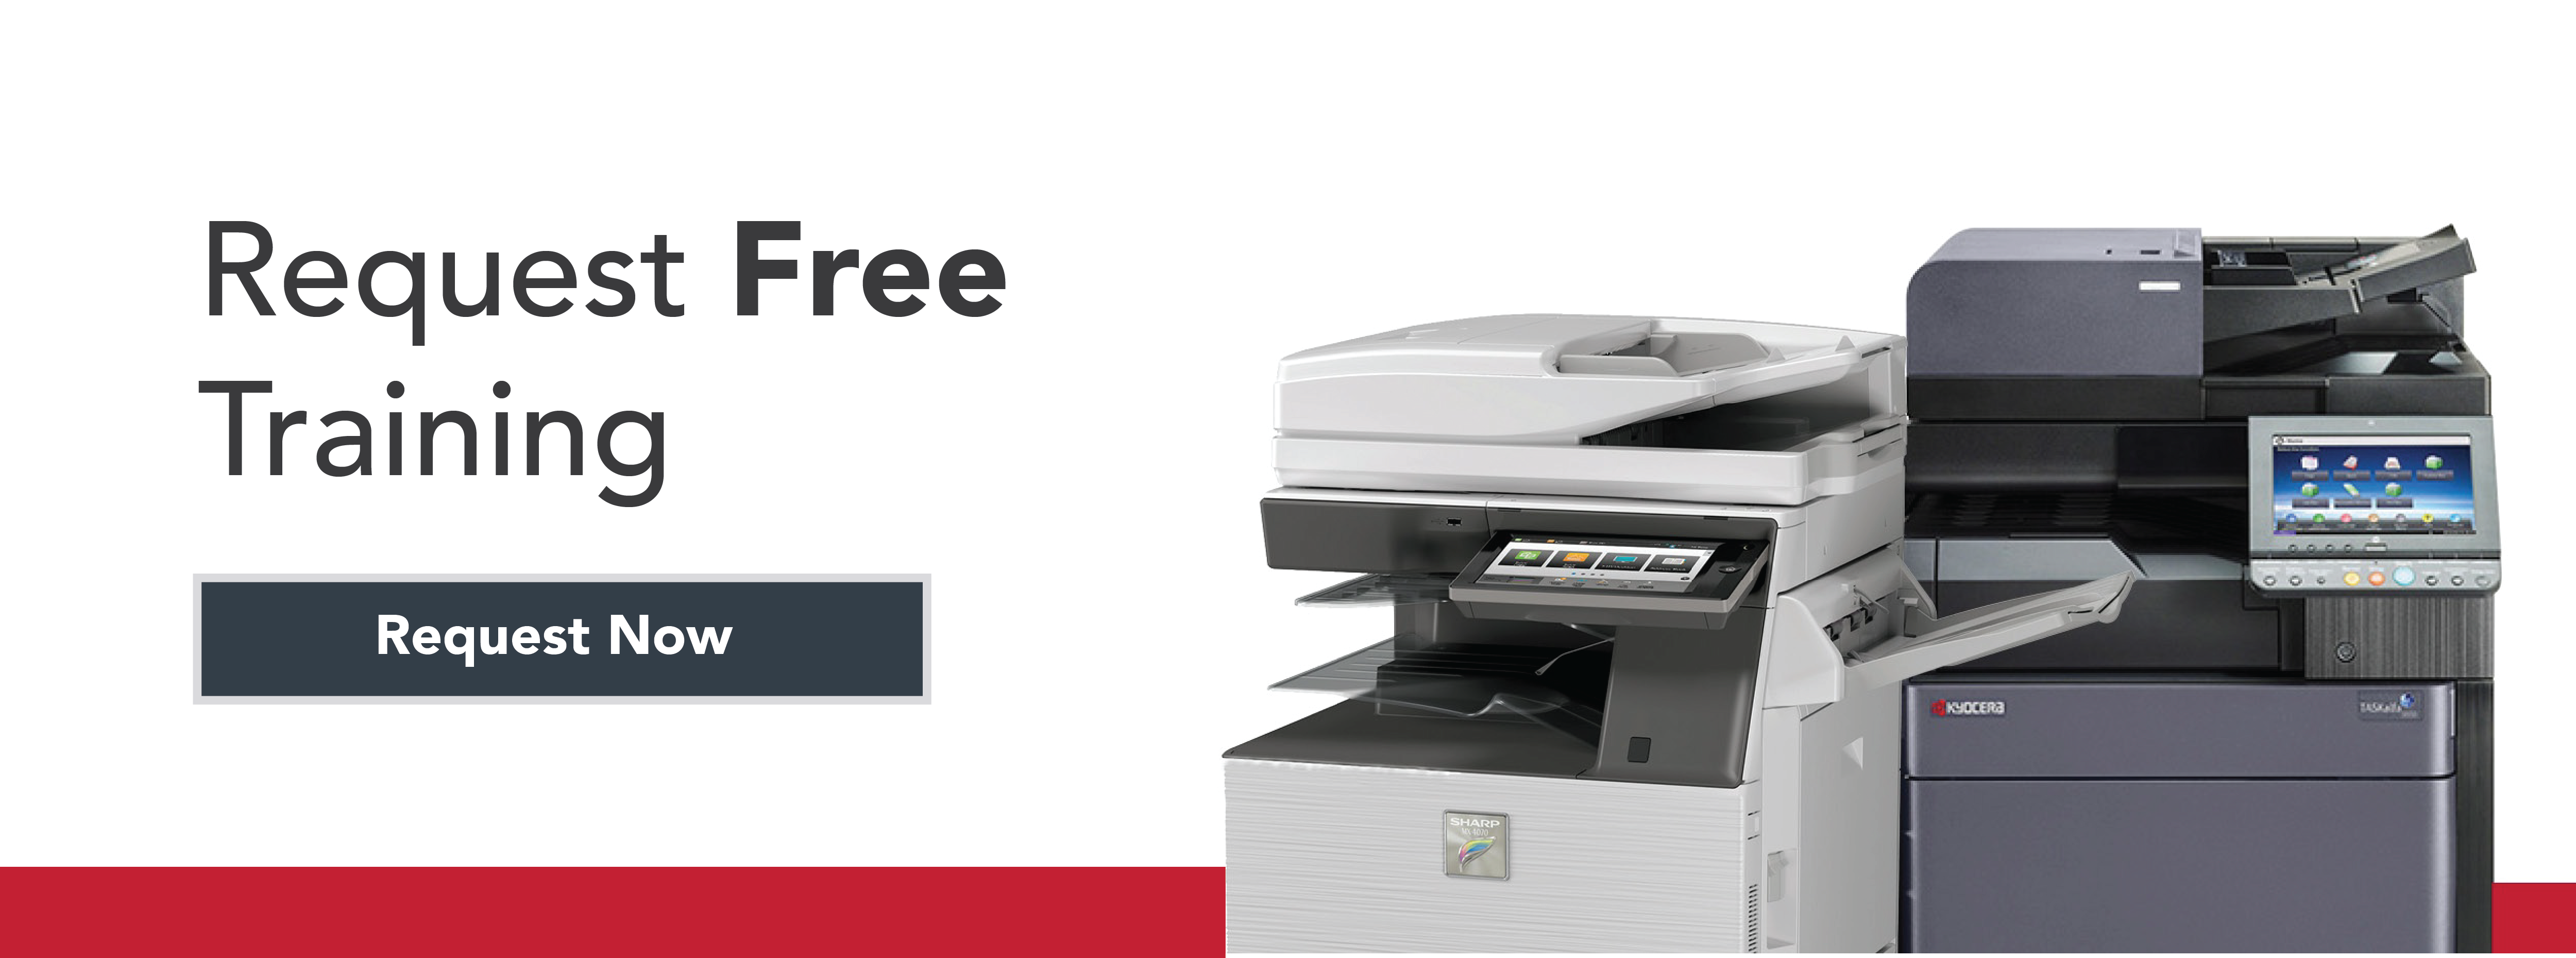 AOS Free Copier and Printer Training Request Now Button